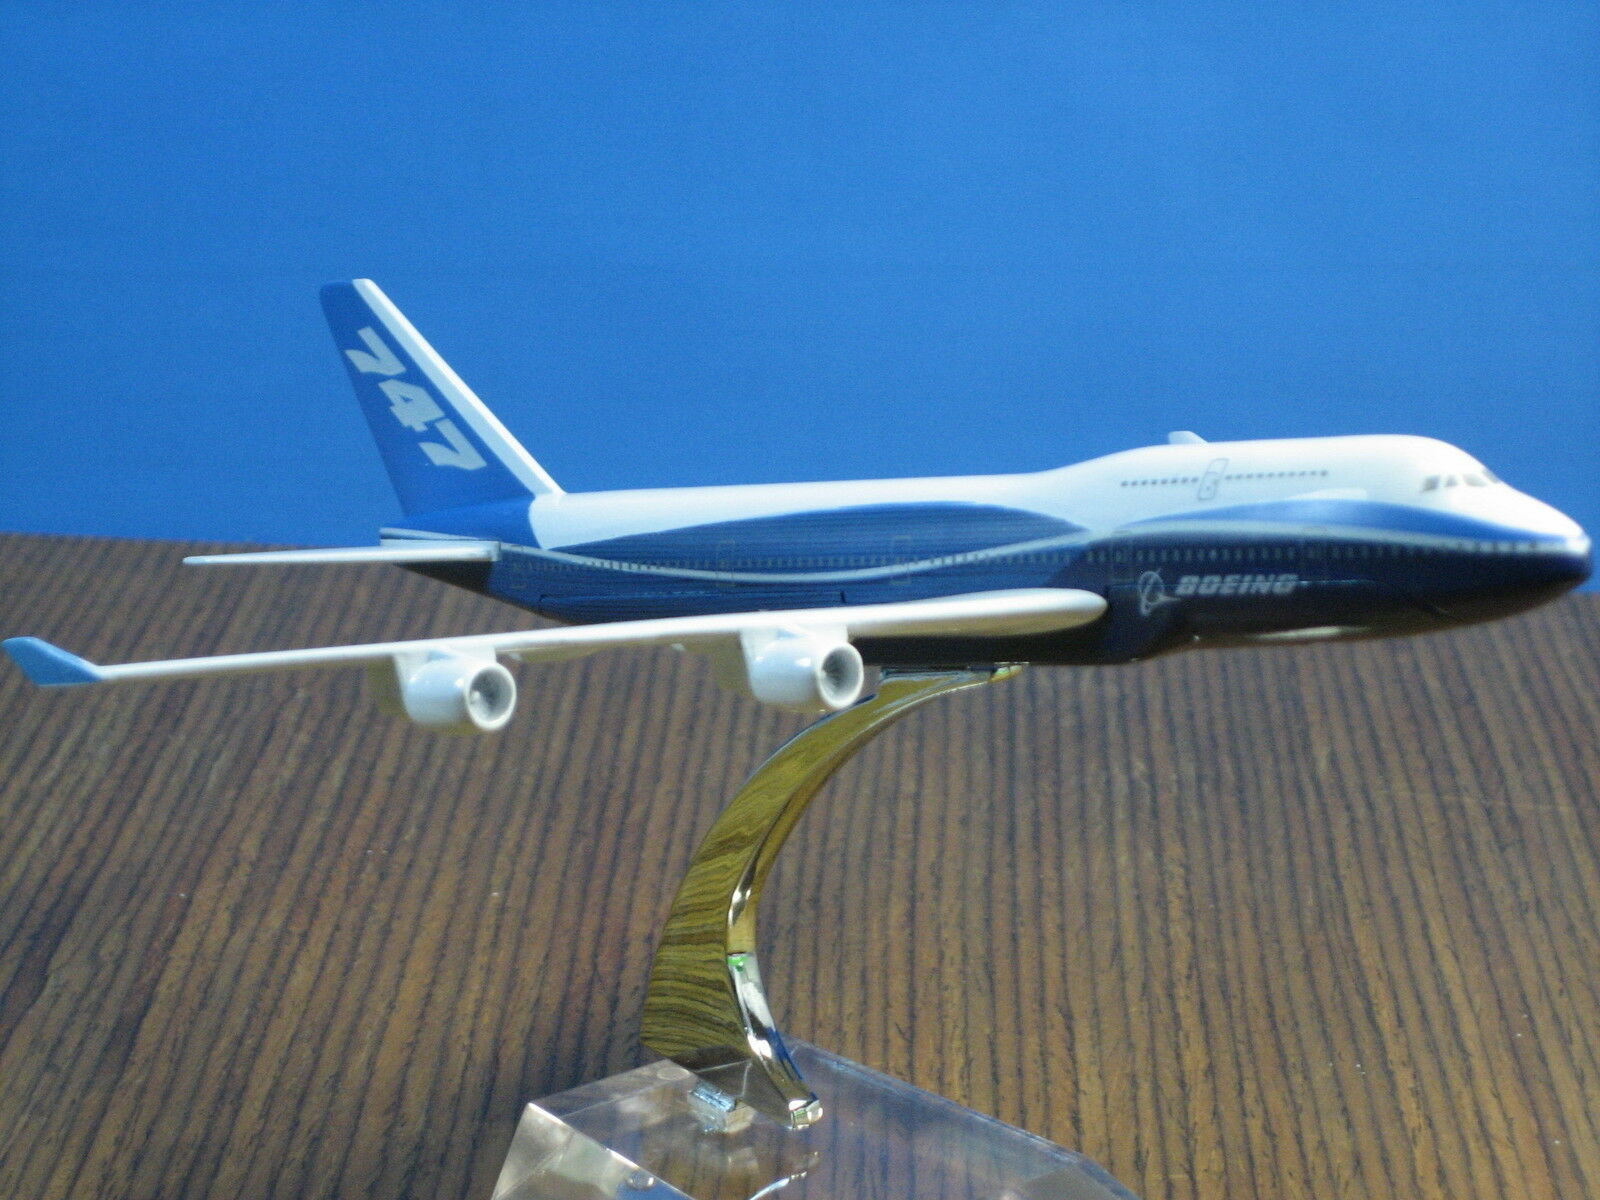 BOEING BOEING BOEING 747-400 Passenger Airplane Aircraft Plane Metal Diecast Model Collection 69d2c3